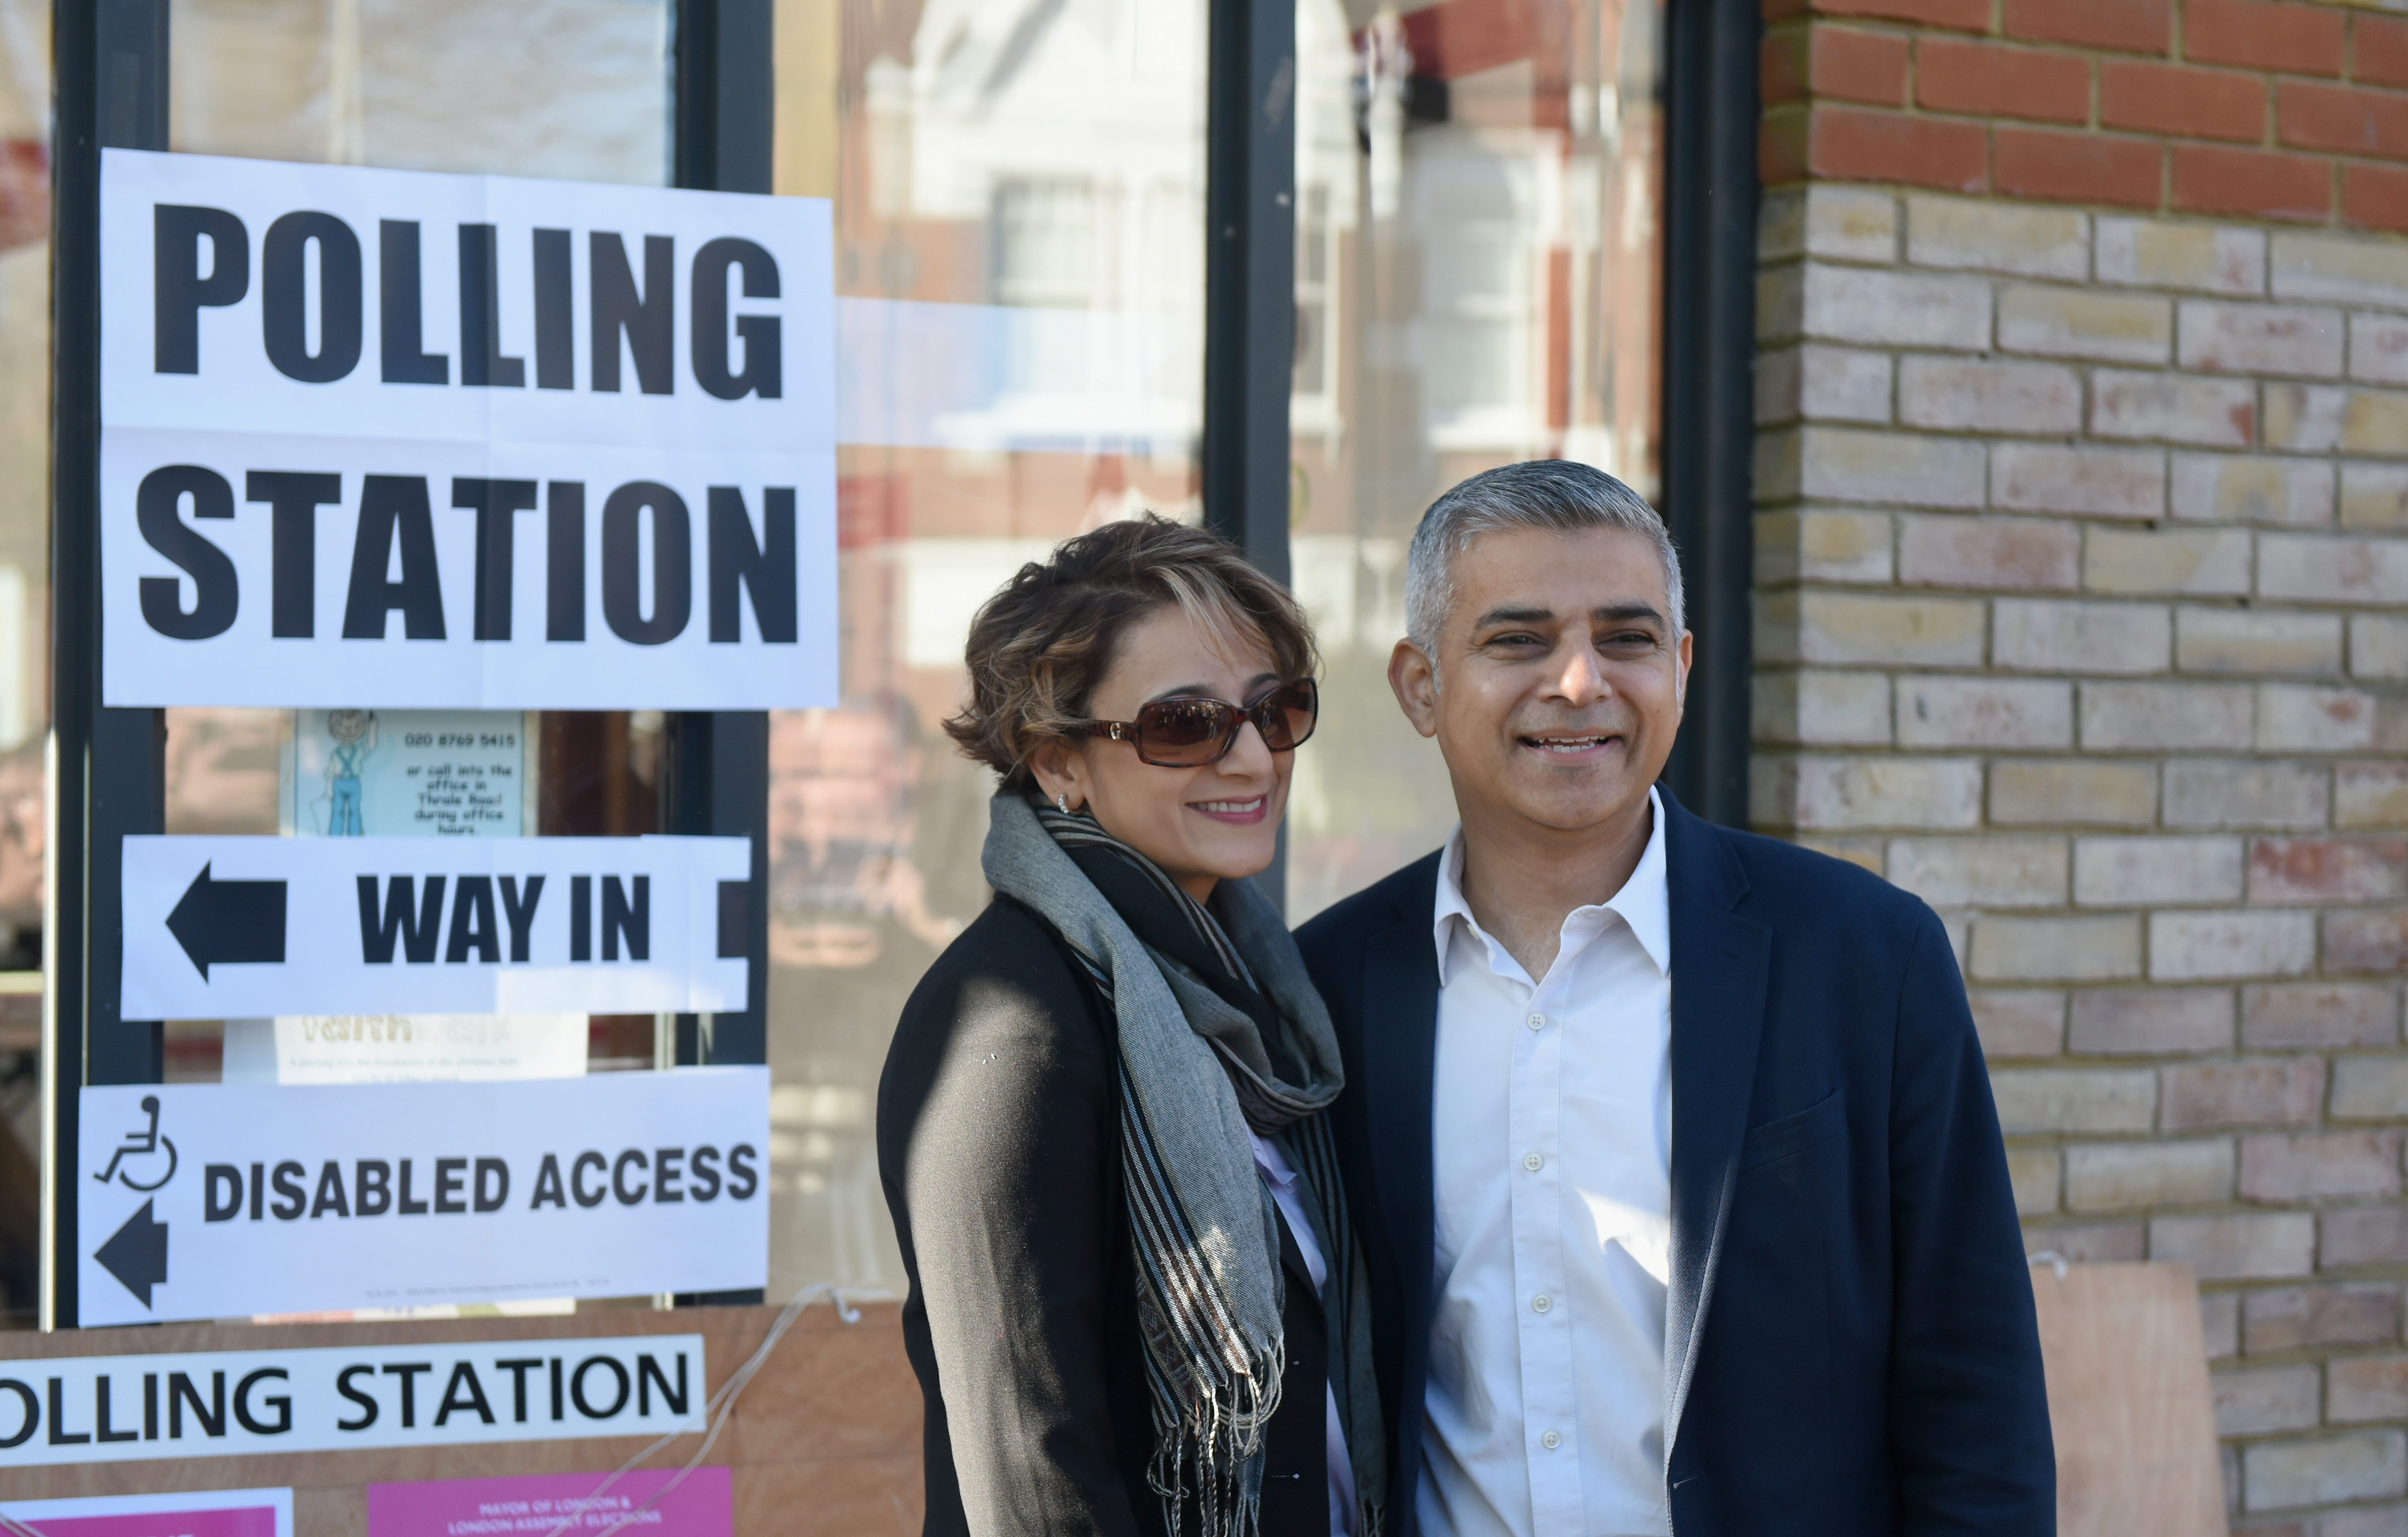 Sadiq Khan on course to win, final pre-vote poll shows